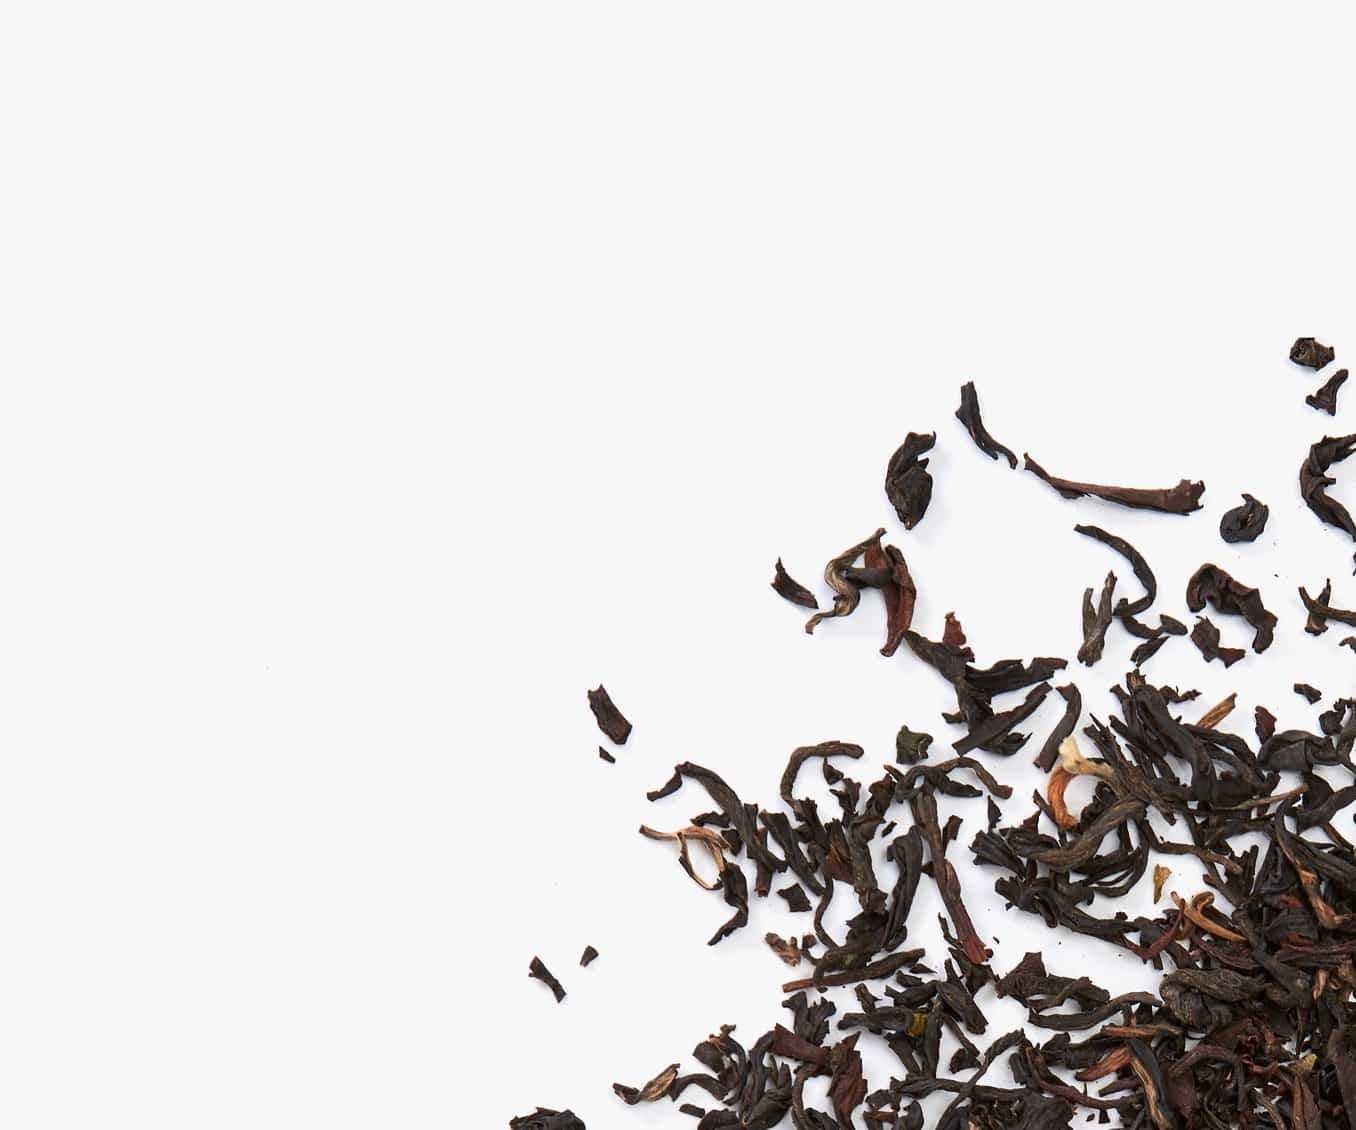 Loose leaf black tea placed in the bottom right corner on a white background.